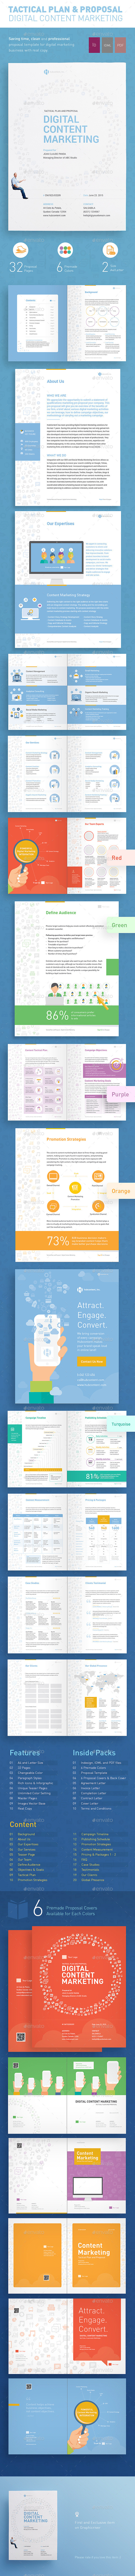 GraphicRiver Clean Content Marketing Proposal 10060275